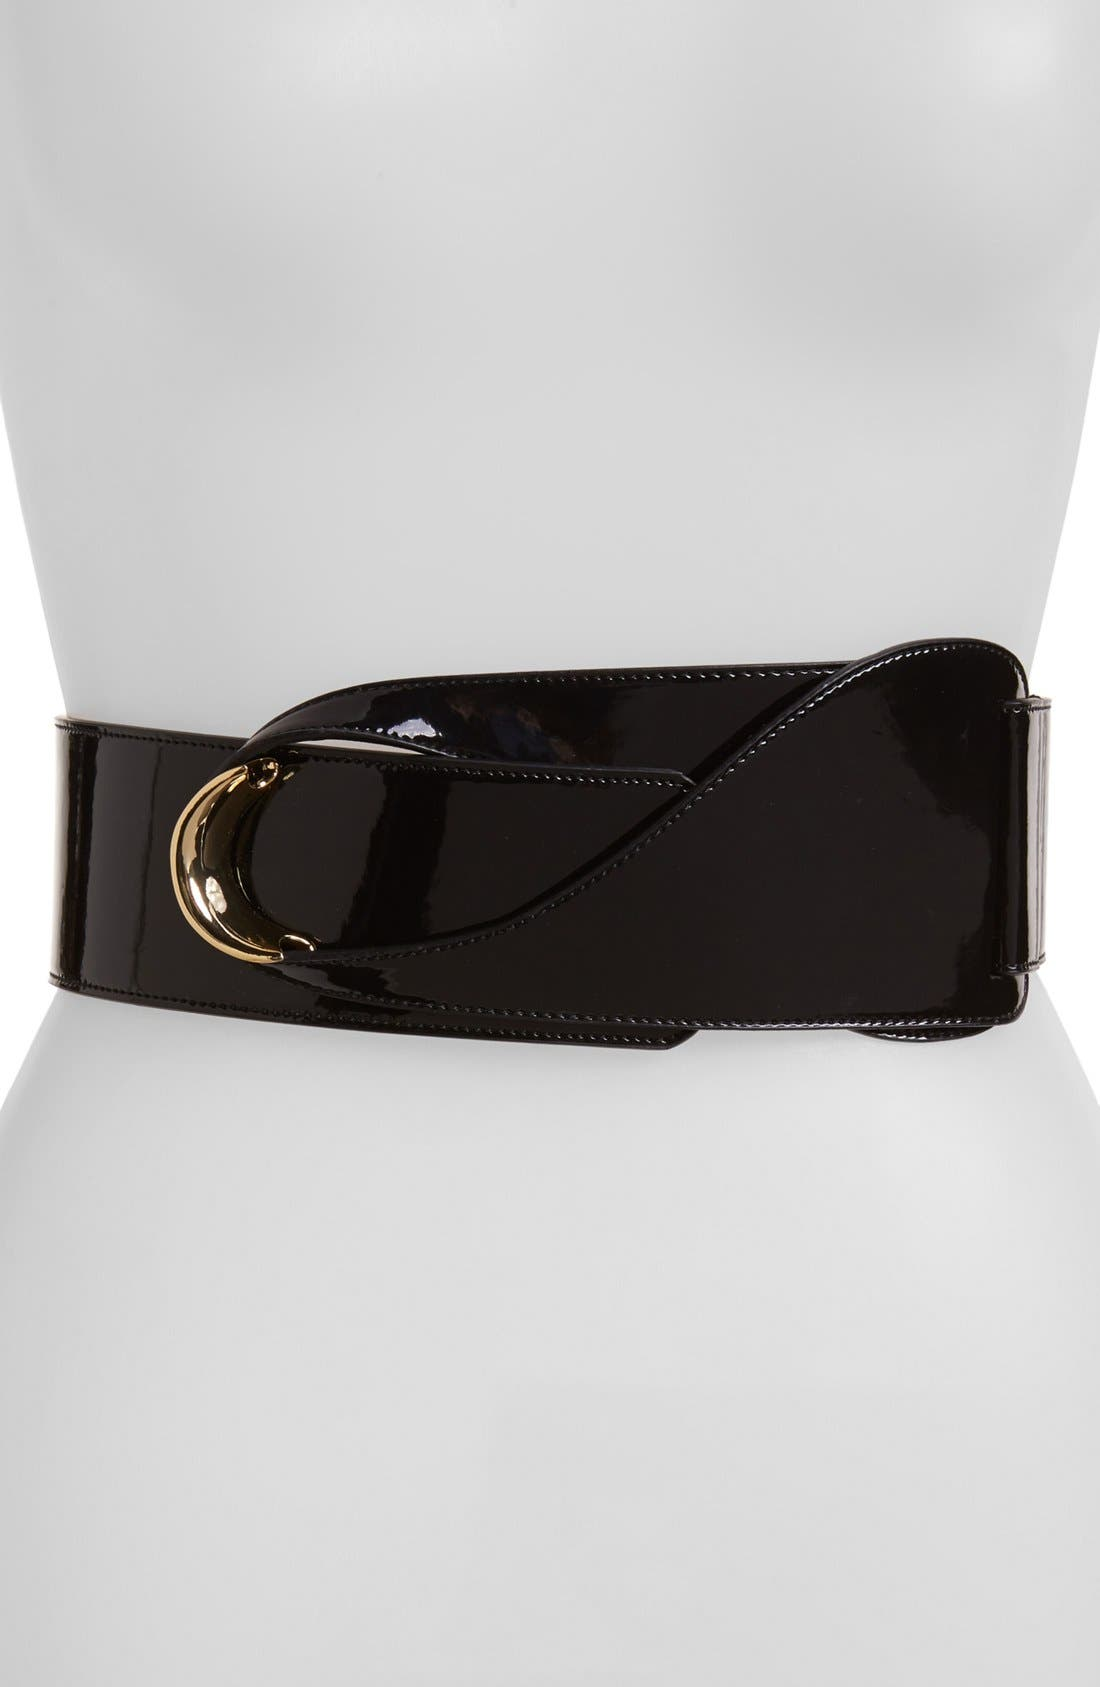 Alternate Image 1 Selected - Lauren Ralph Lauren Patent Leather Belt